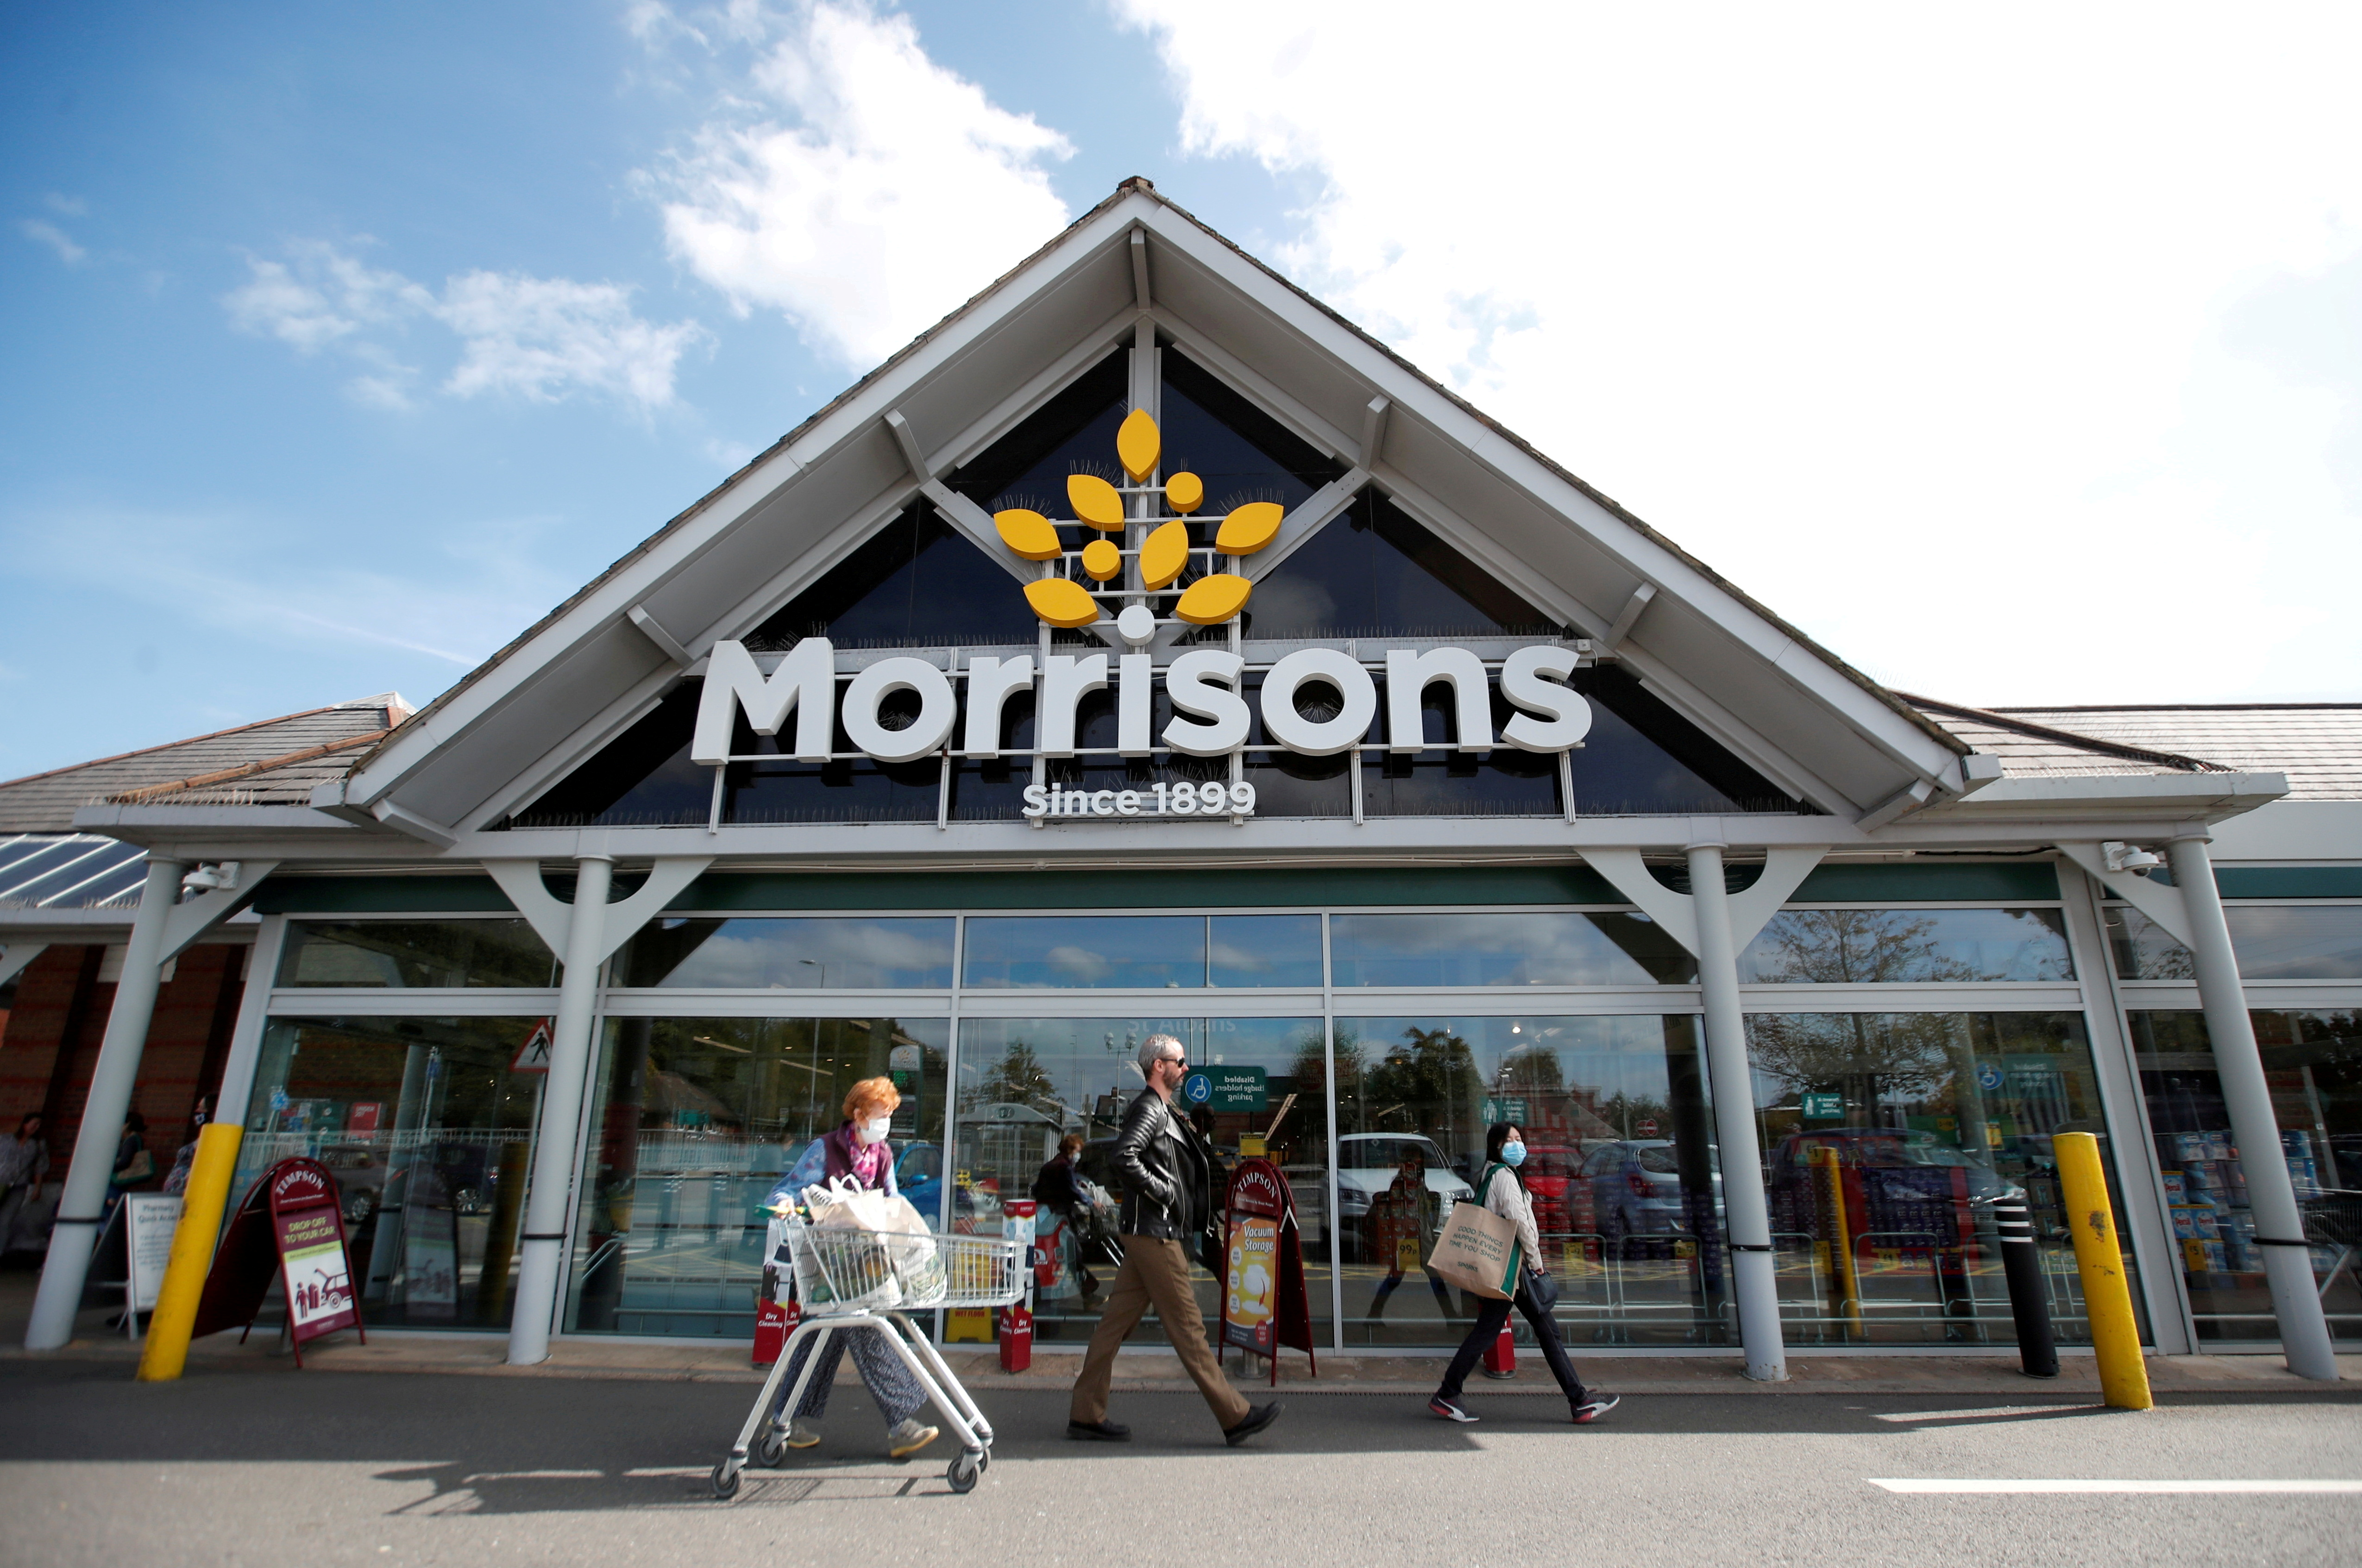 A Morrisons store is pictured in St Albans, Britain, September 10, 2020.  REUTERS/Peter Cziborra/File Photo